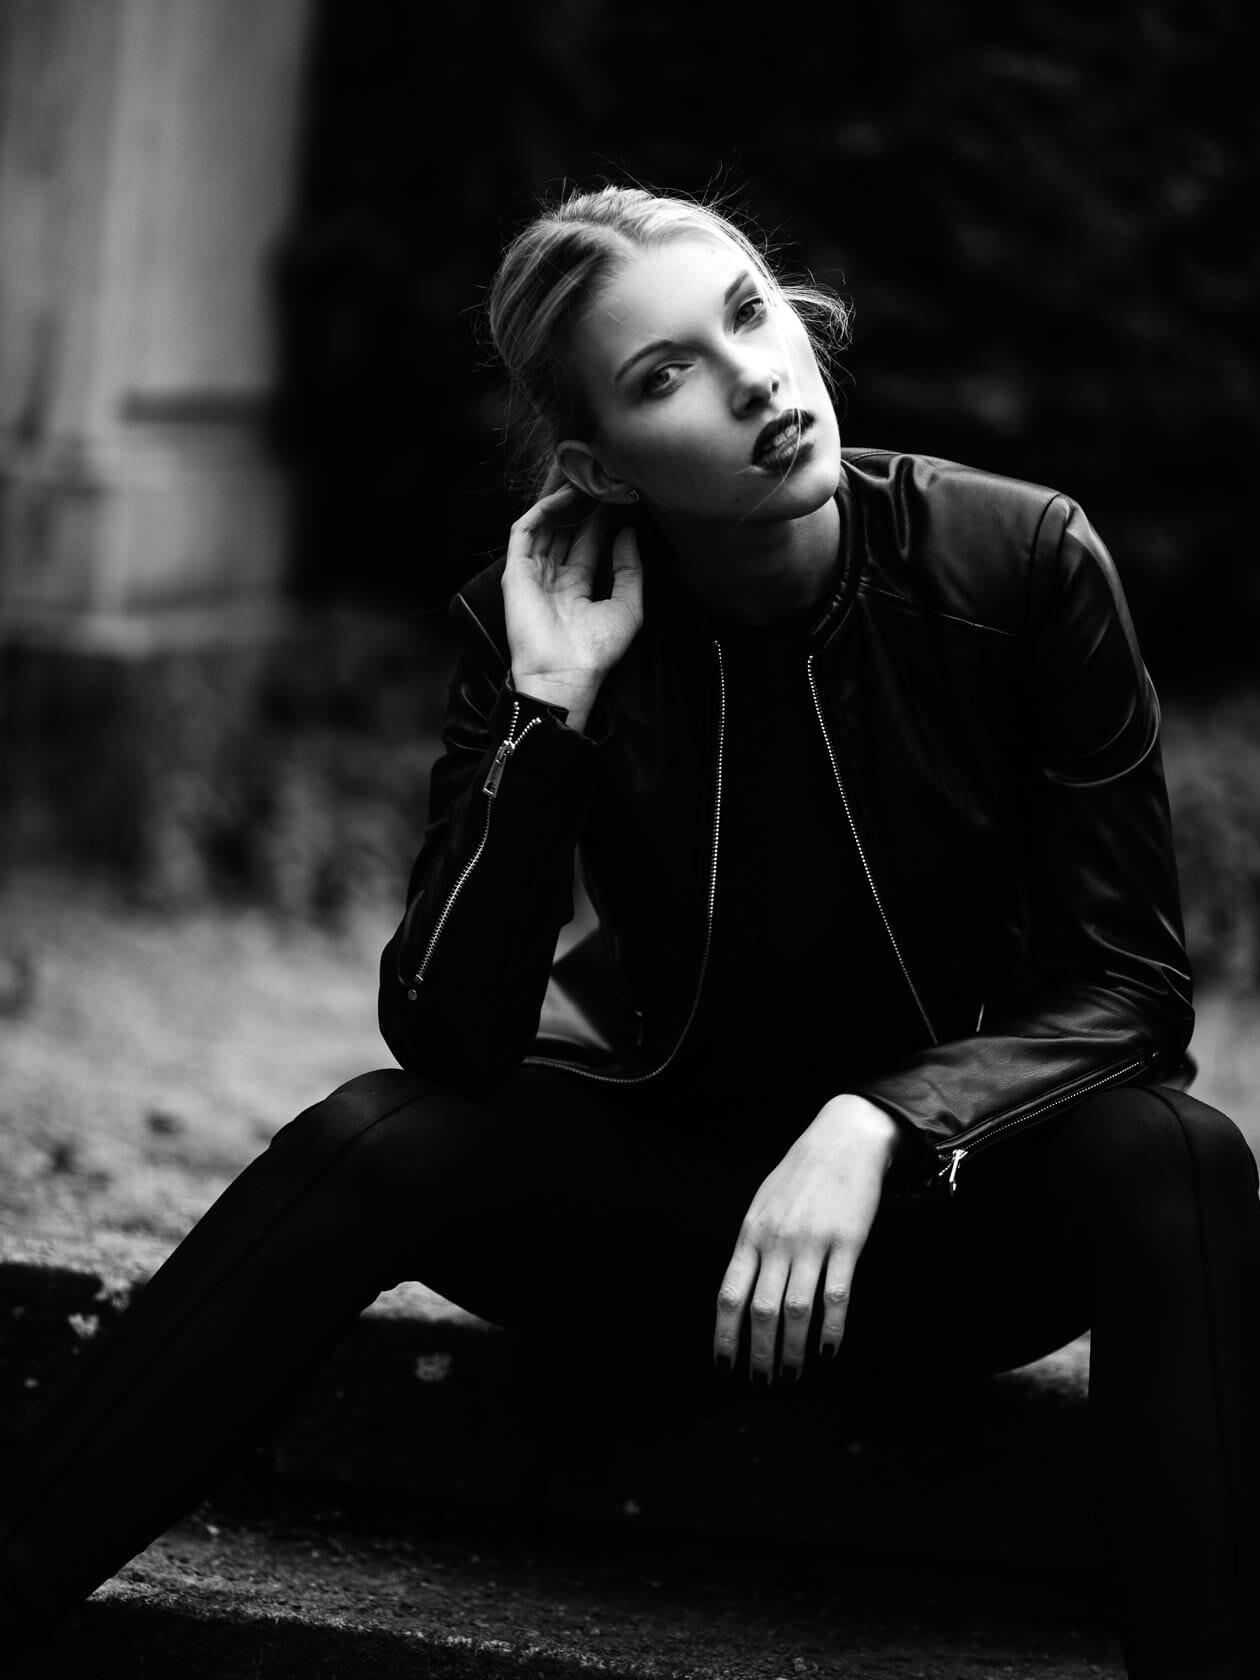 Fashion Editorial Dark Autumn Herbst Lederjacke Schwarzweiss